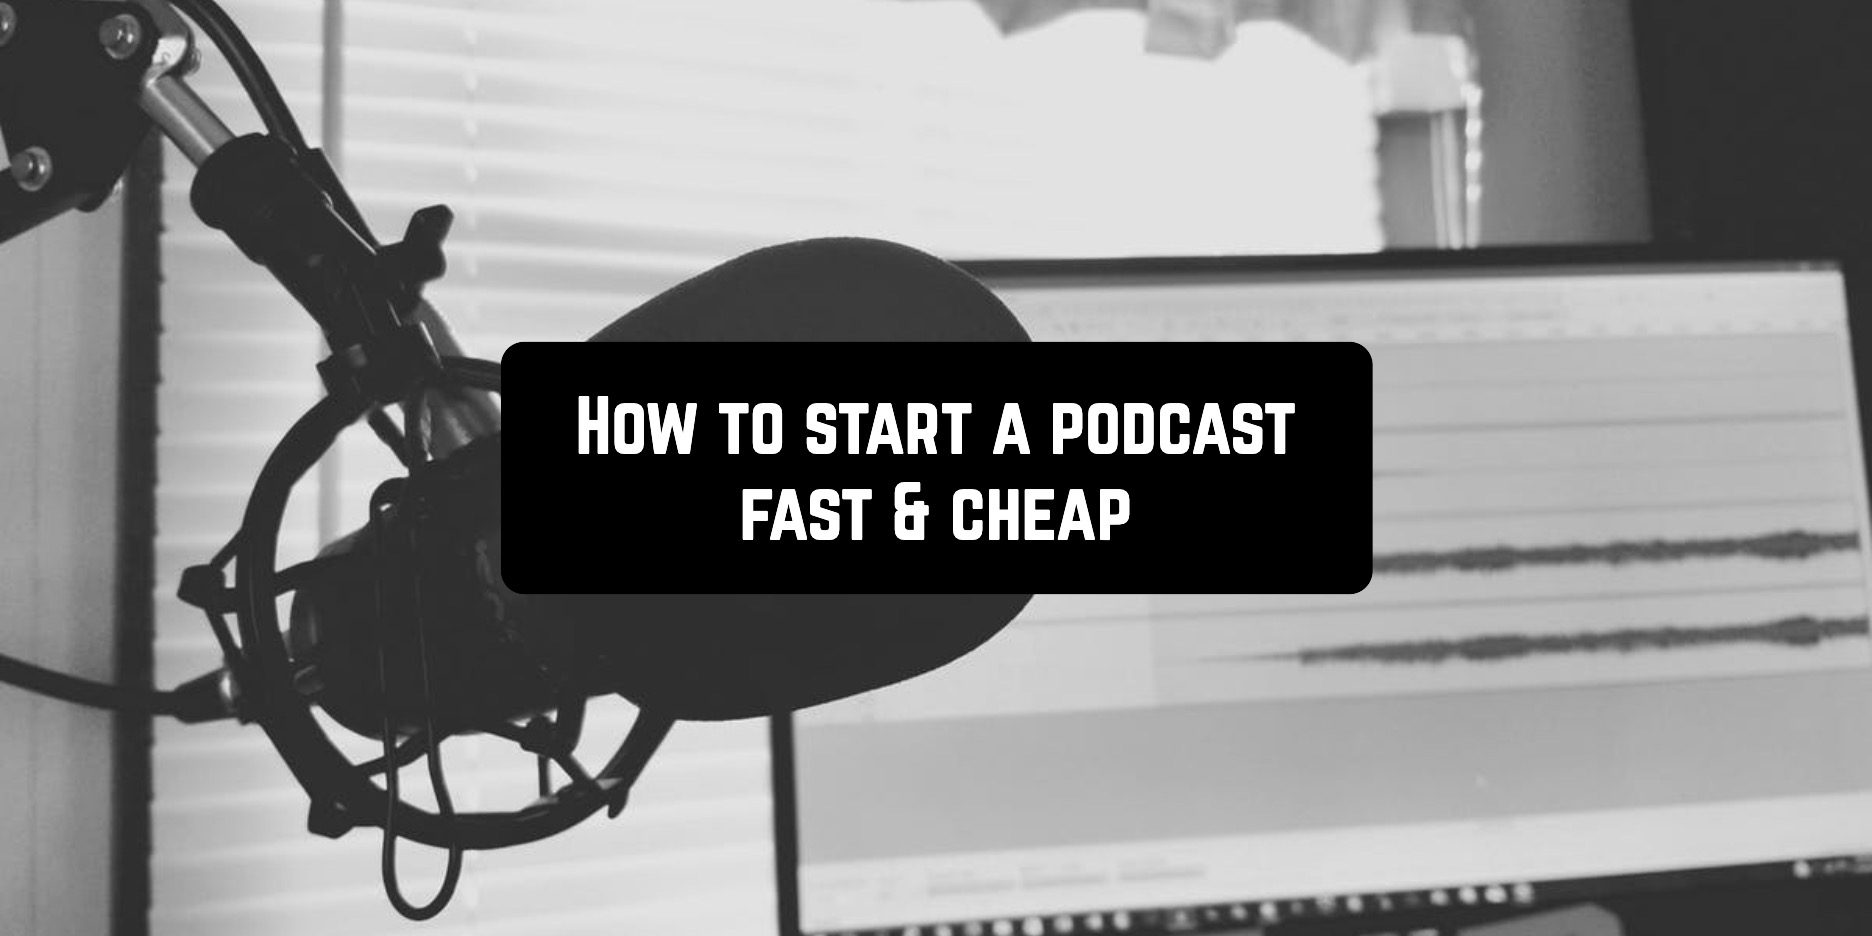 How to start a podcast fast & cheap